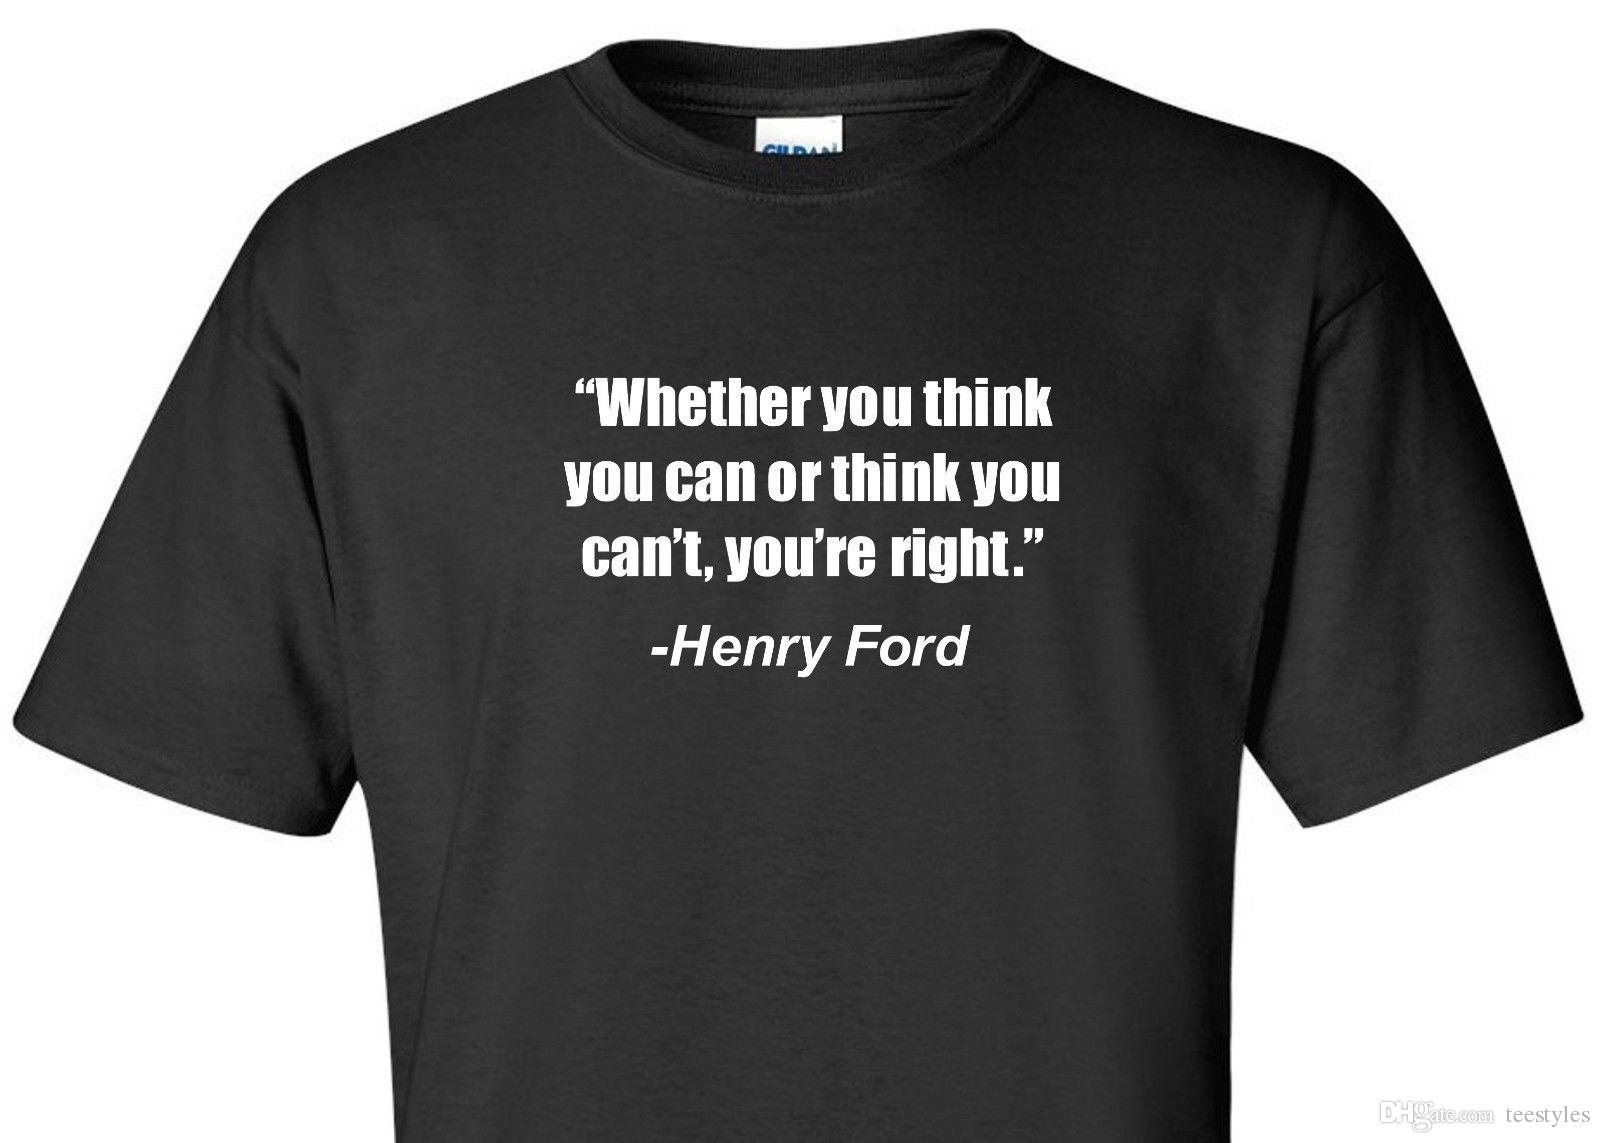 b28b1a24 Henry Ford T Shirt Whether You Think Can Motivational Inspirational Quote  Shirt Tee Shirt Men Crazy White Short Sleeve Custom XXXL Couple Ca T Shirt  Of The ...